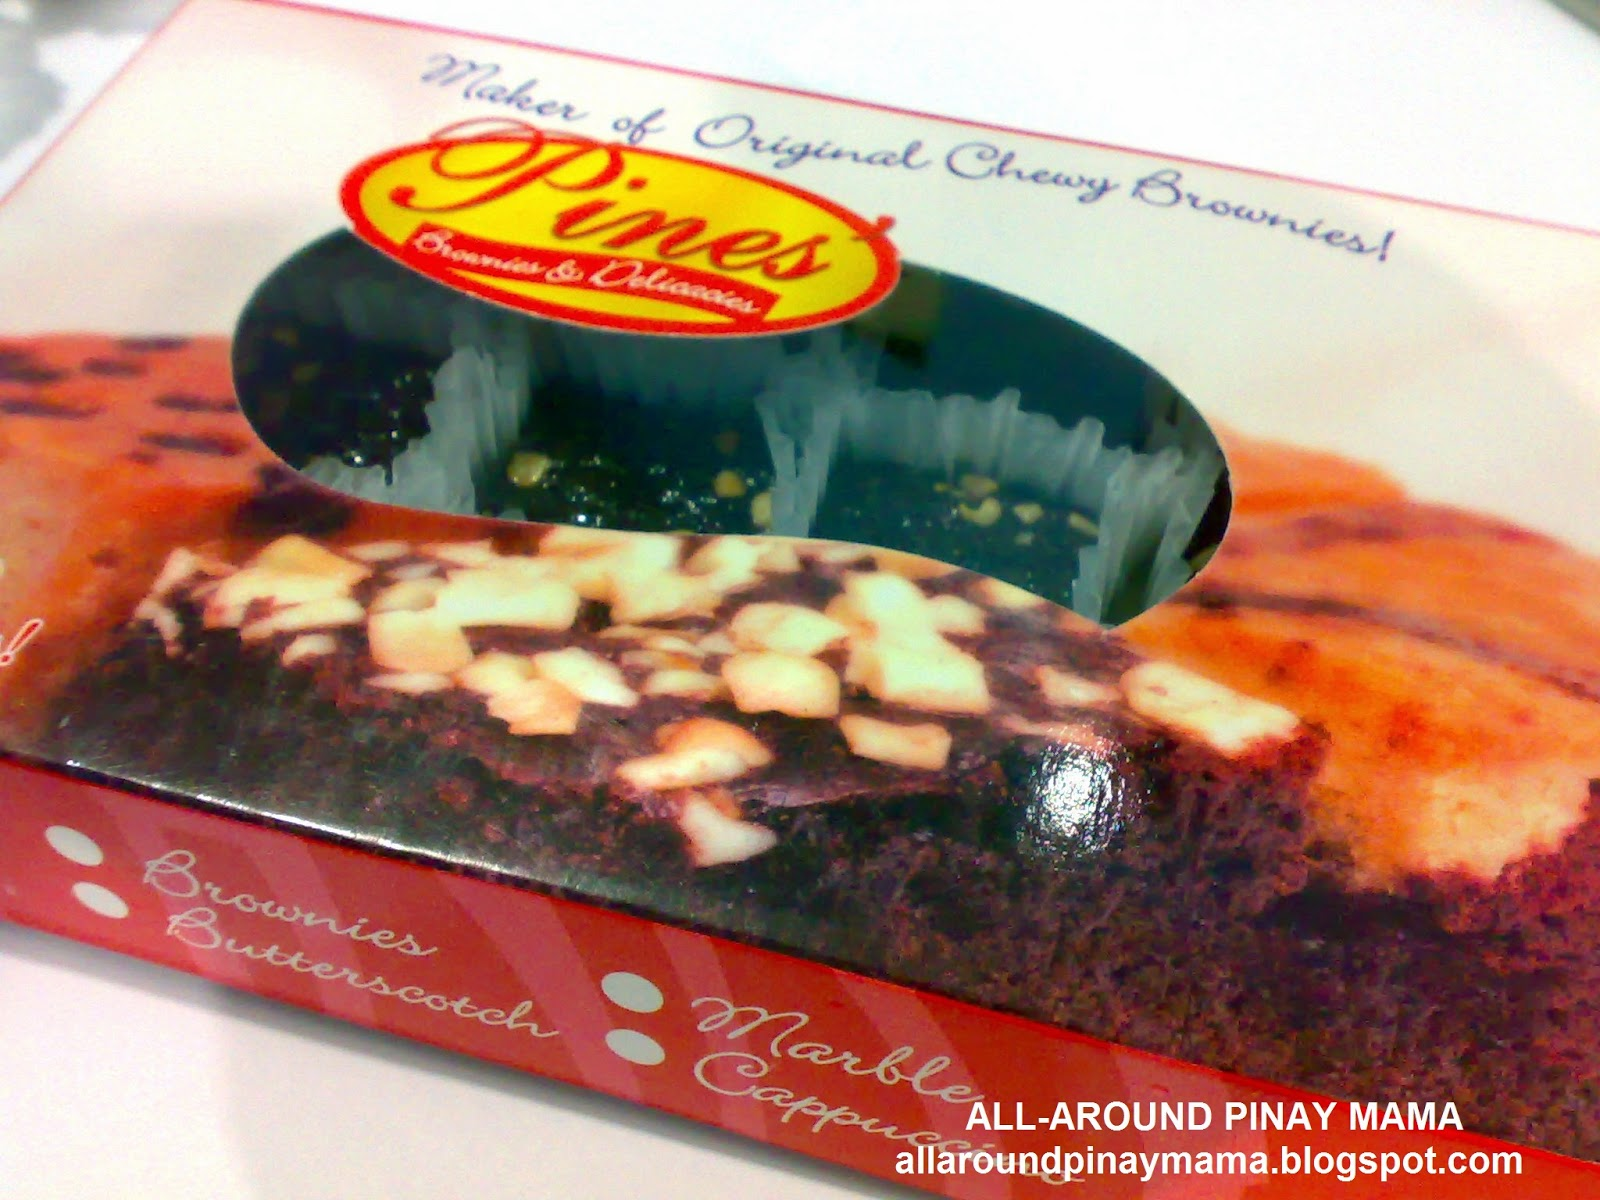 Pines' Brownies and Delicacies | All-Around Pinay Mama